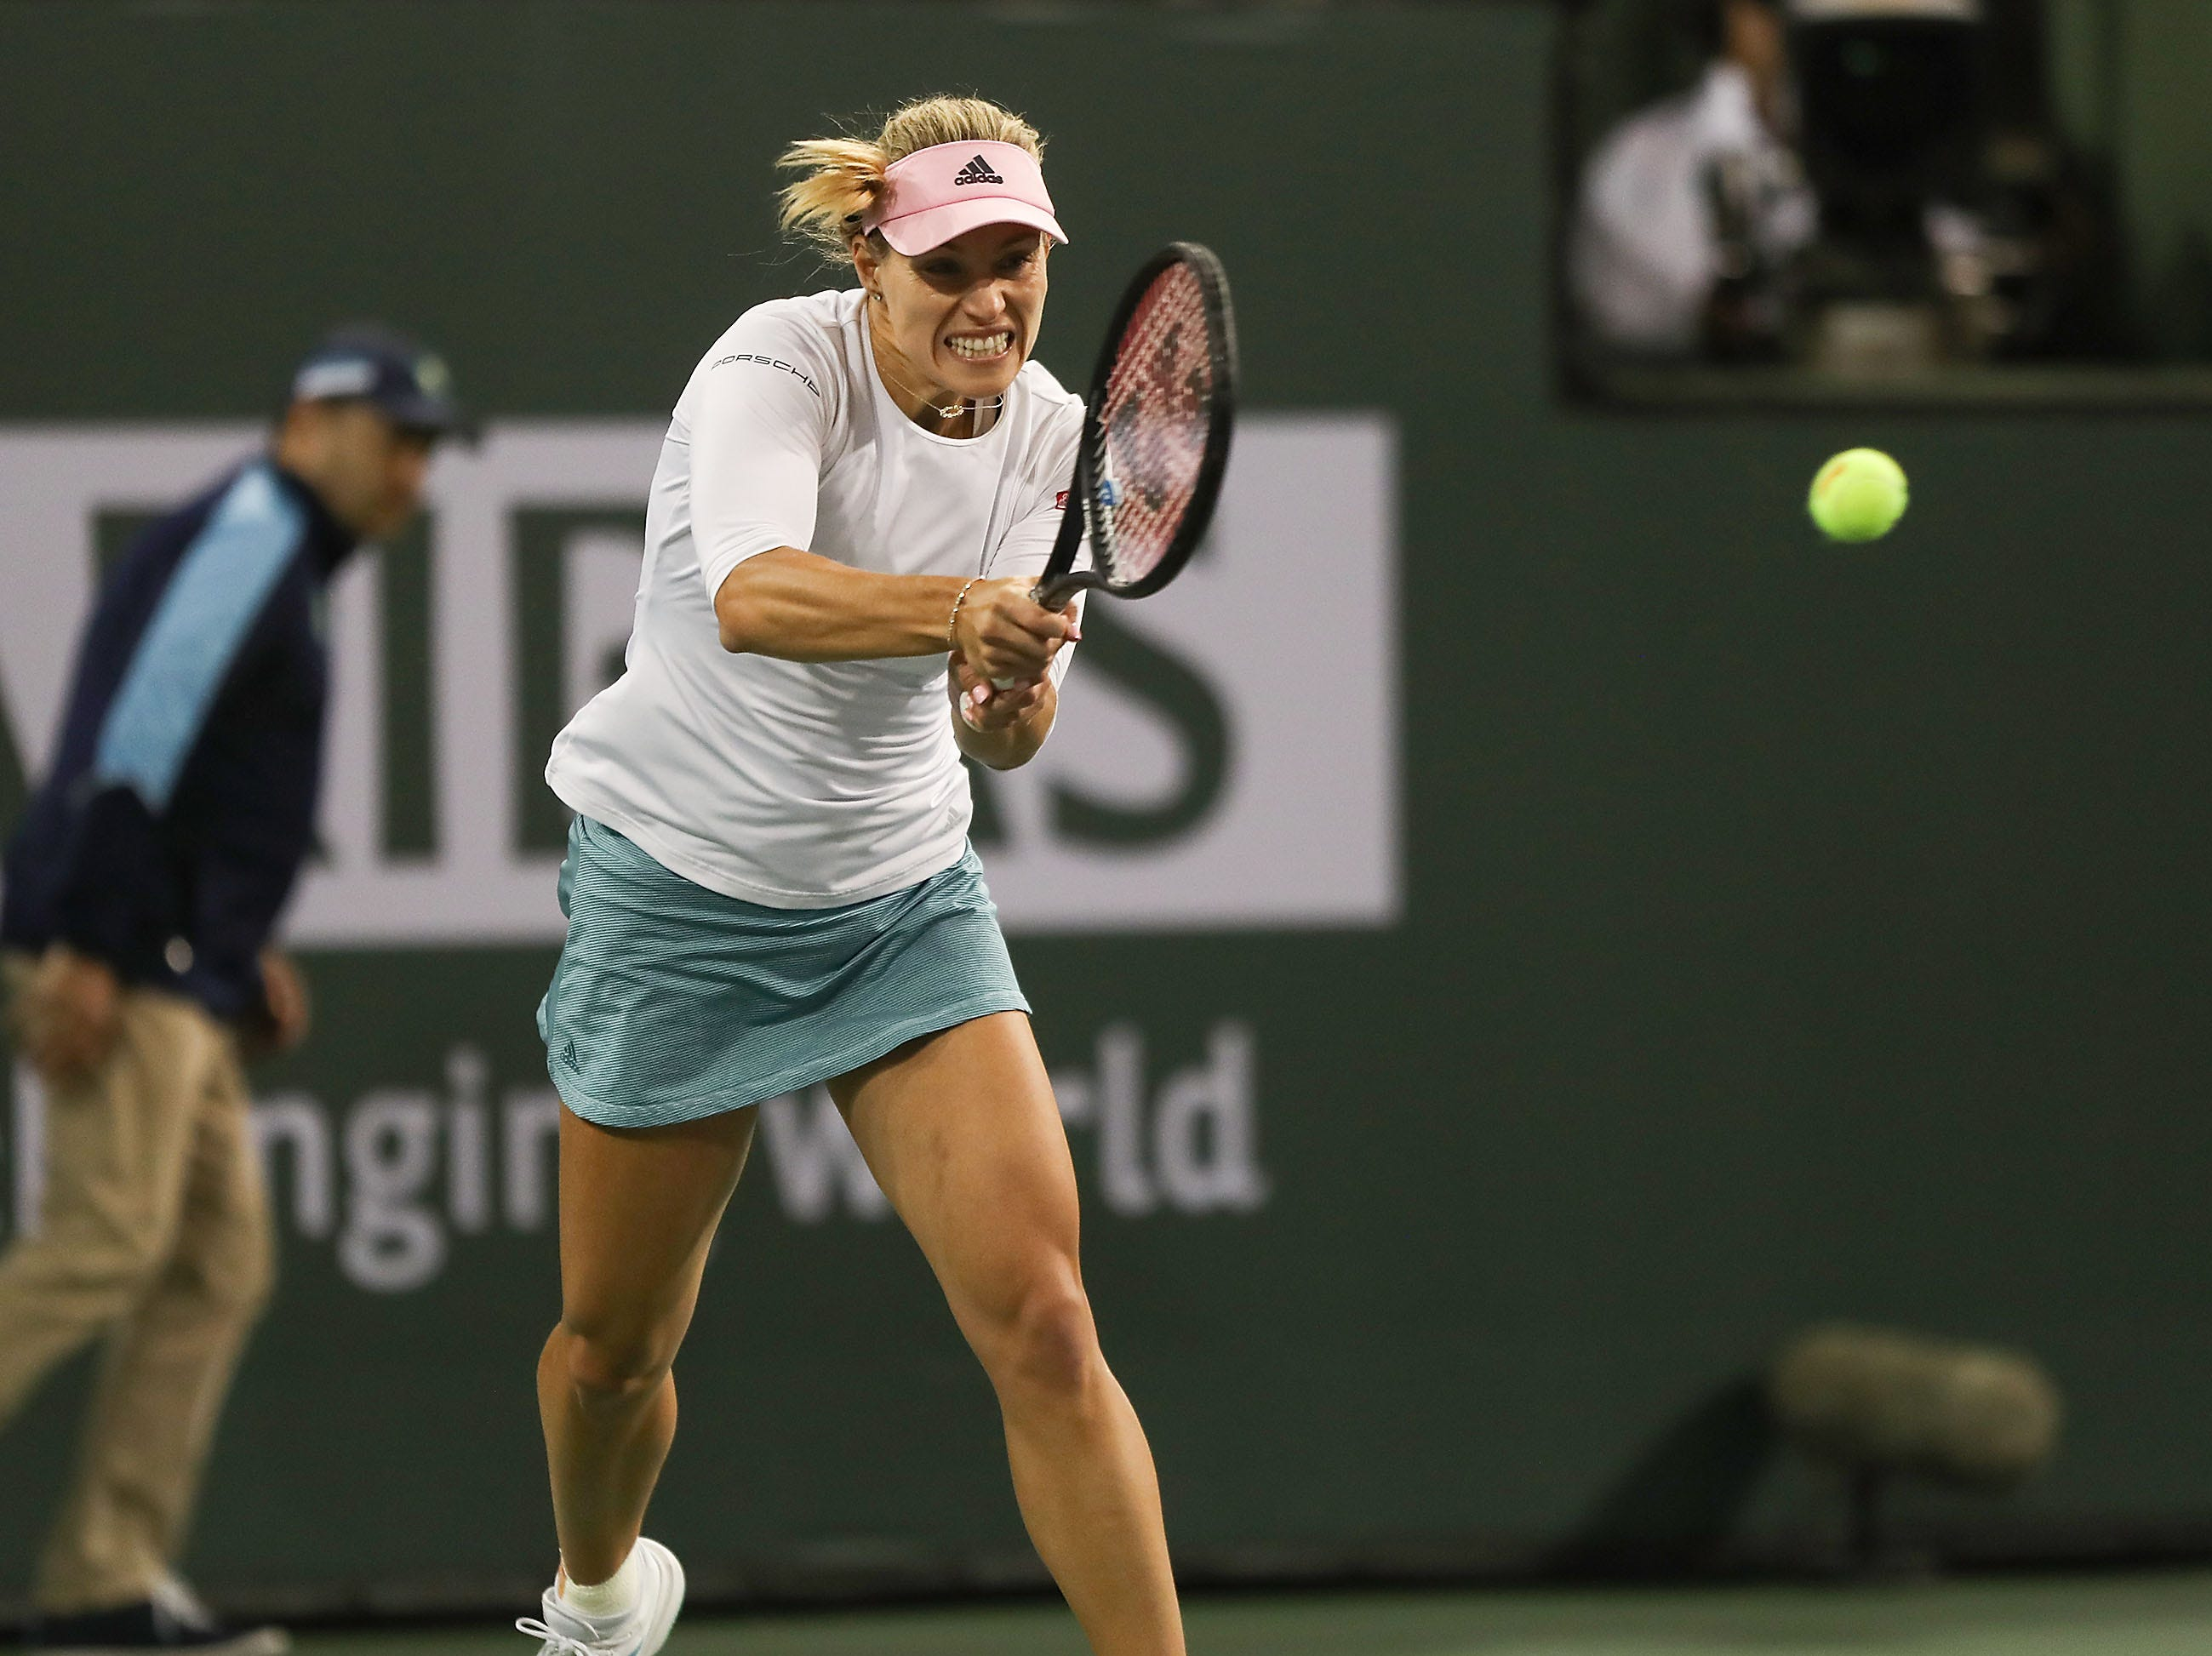 Angelique Kerber hits a shot during her win over Belinda Bencic in the semifinal match at the BNP Paribas Open in Indian Wells, March 15, 2019.